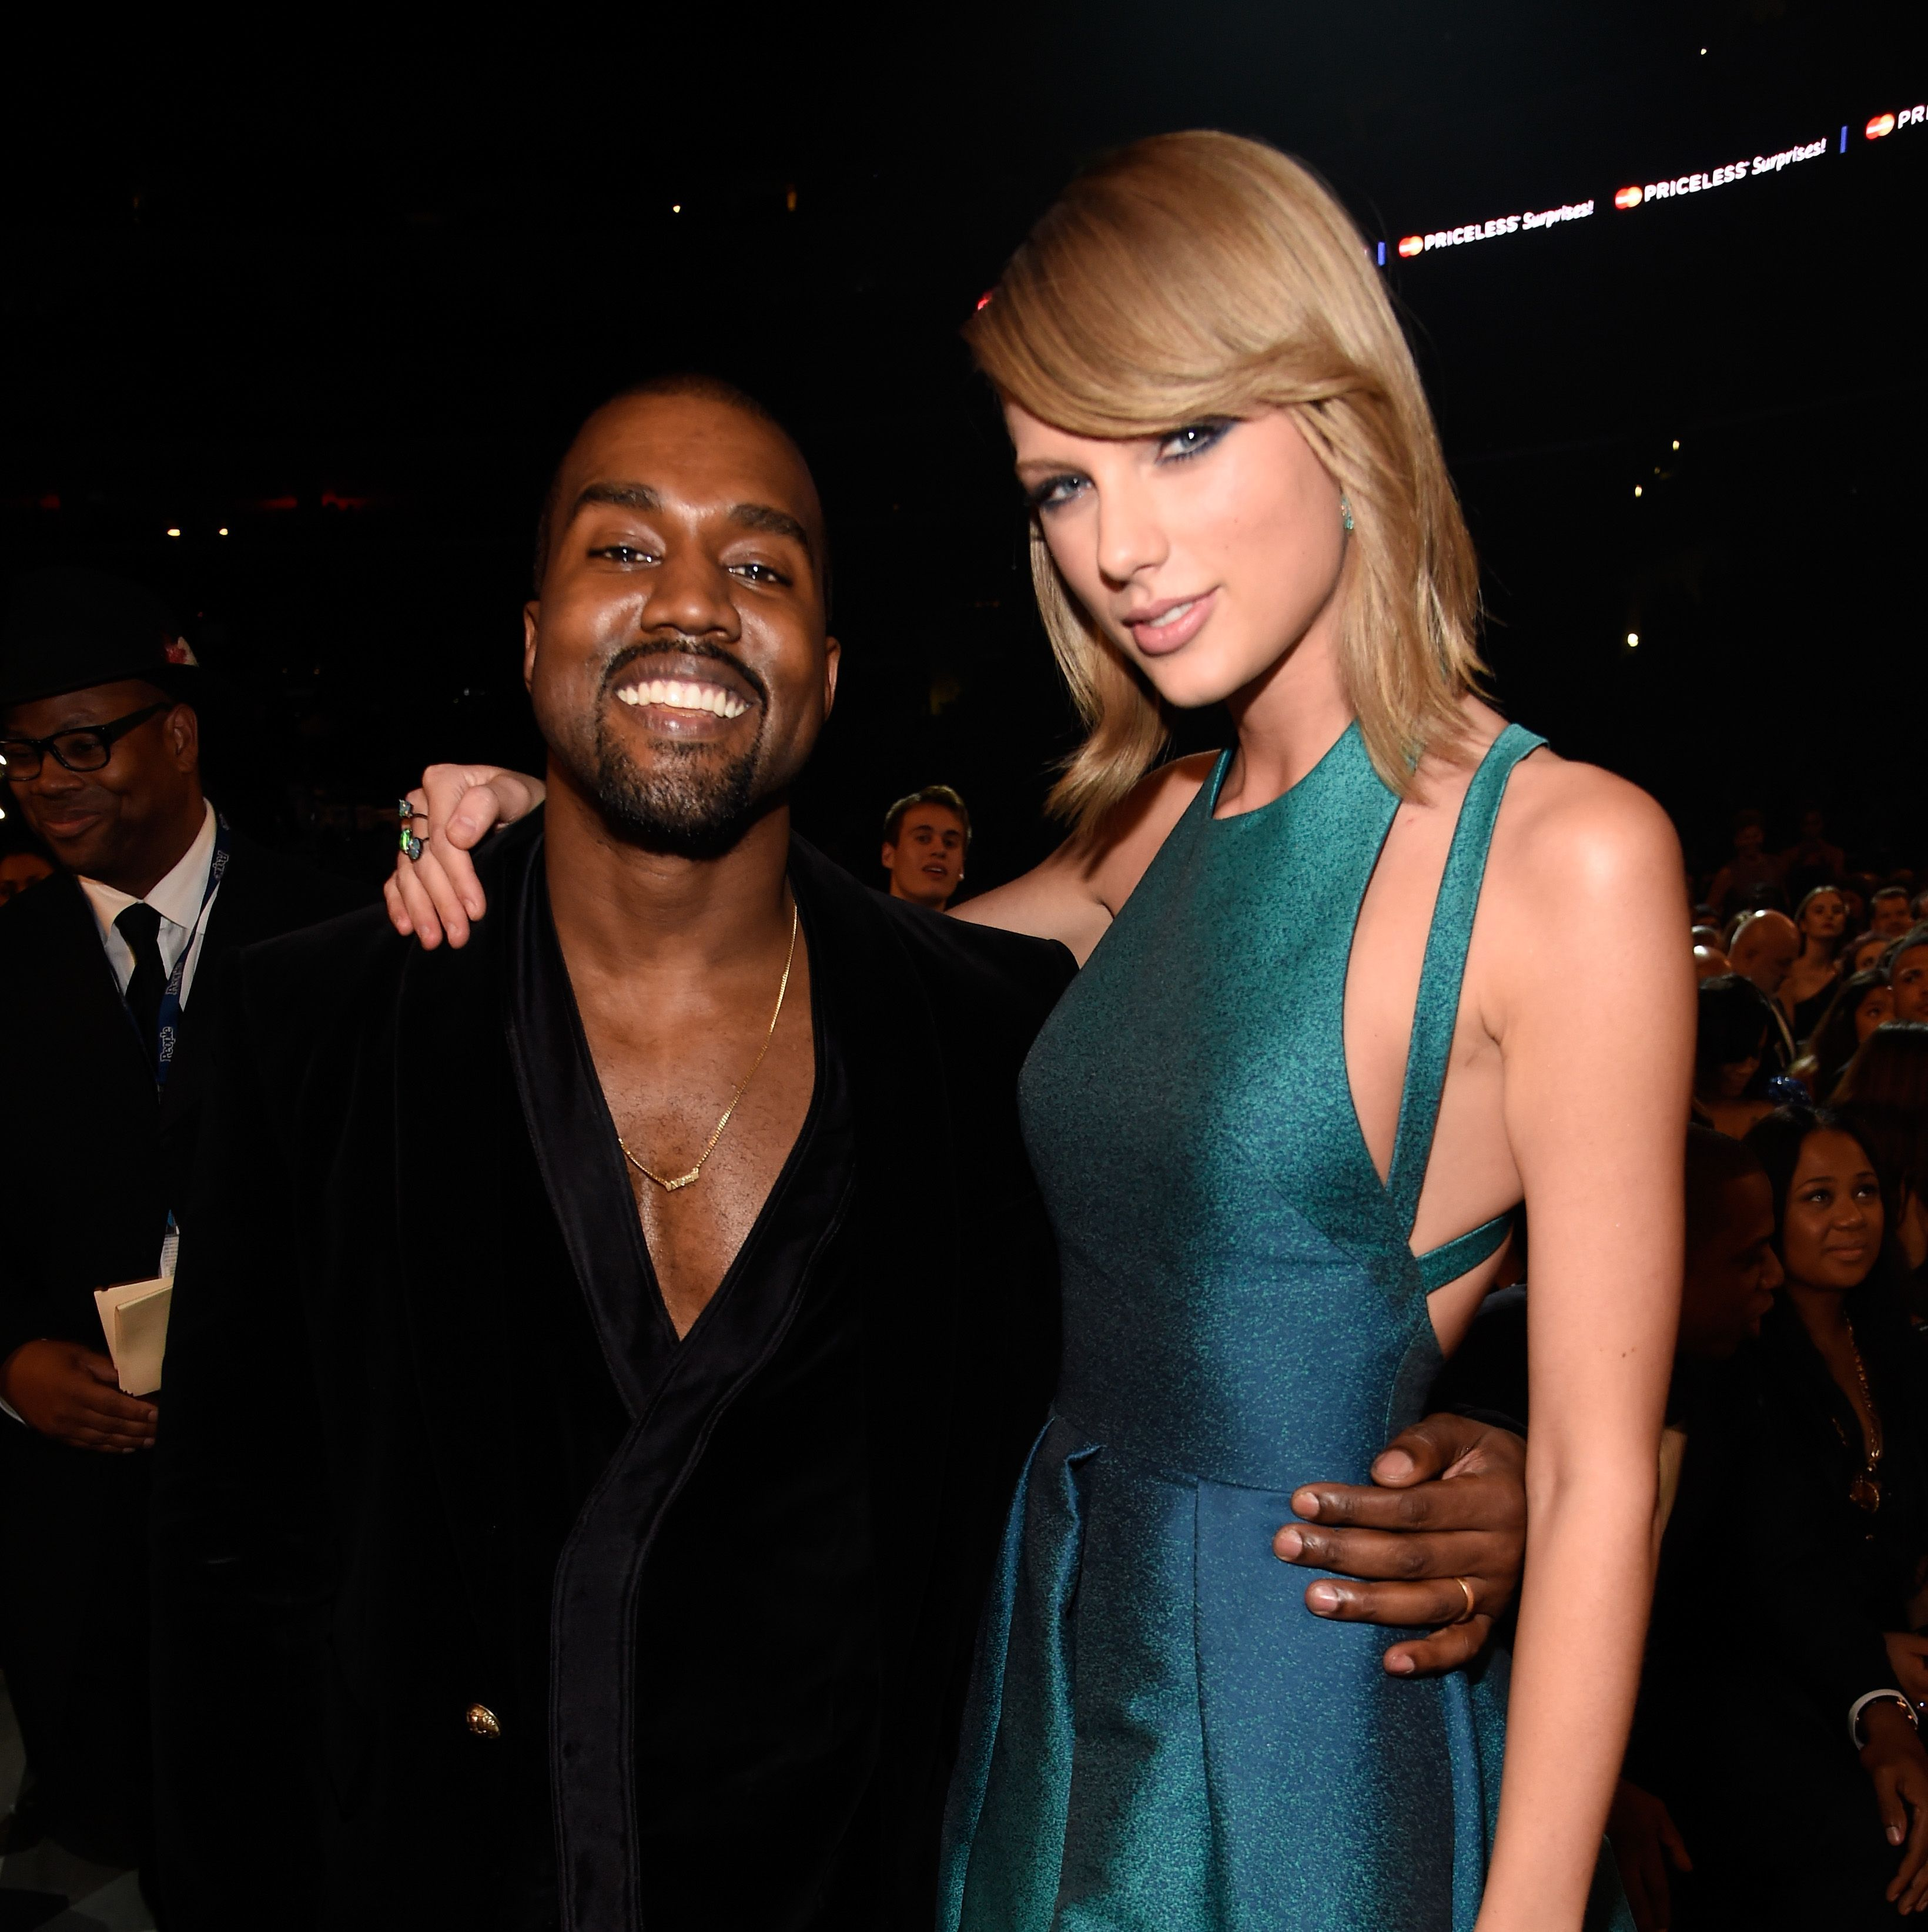 Taylor Swift Breaks Her Silence On The Full Kanye West Famous Phone Call Leak In 2020 Kanye West Kanye Celebrities